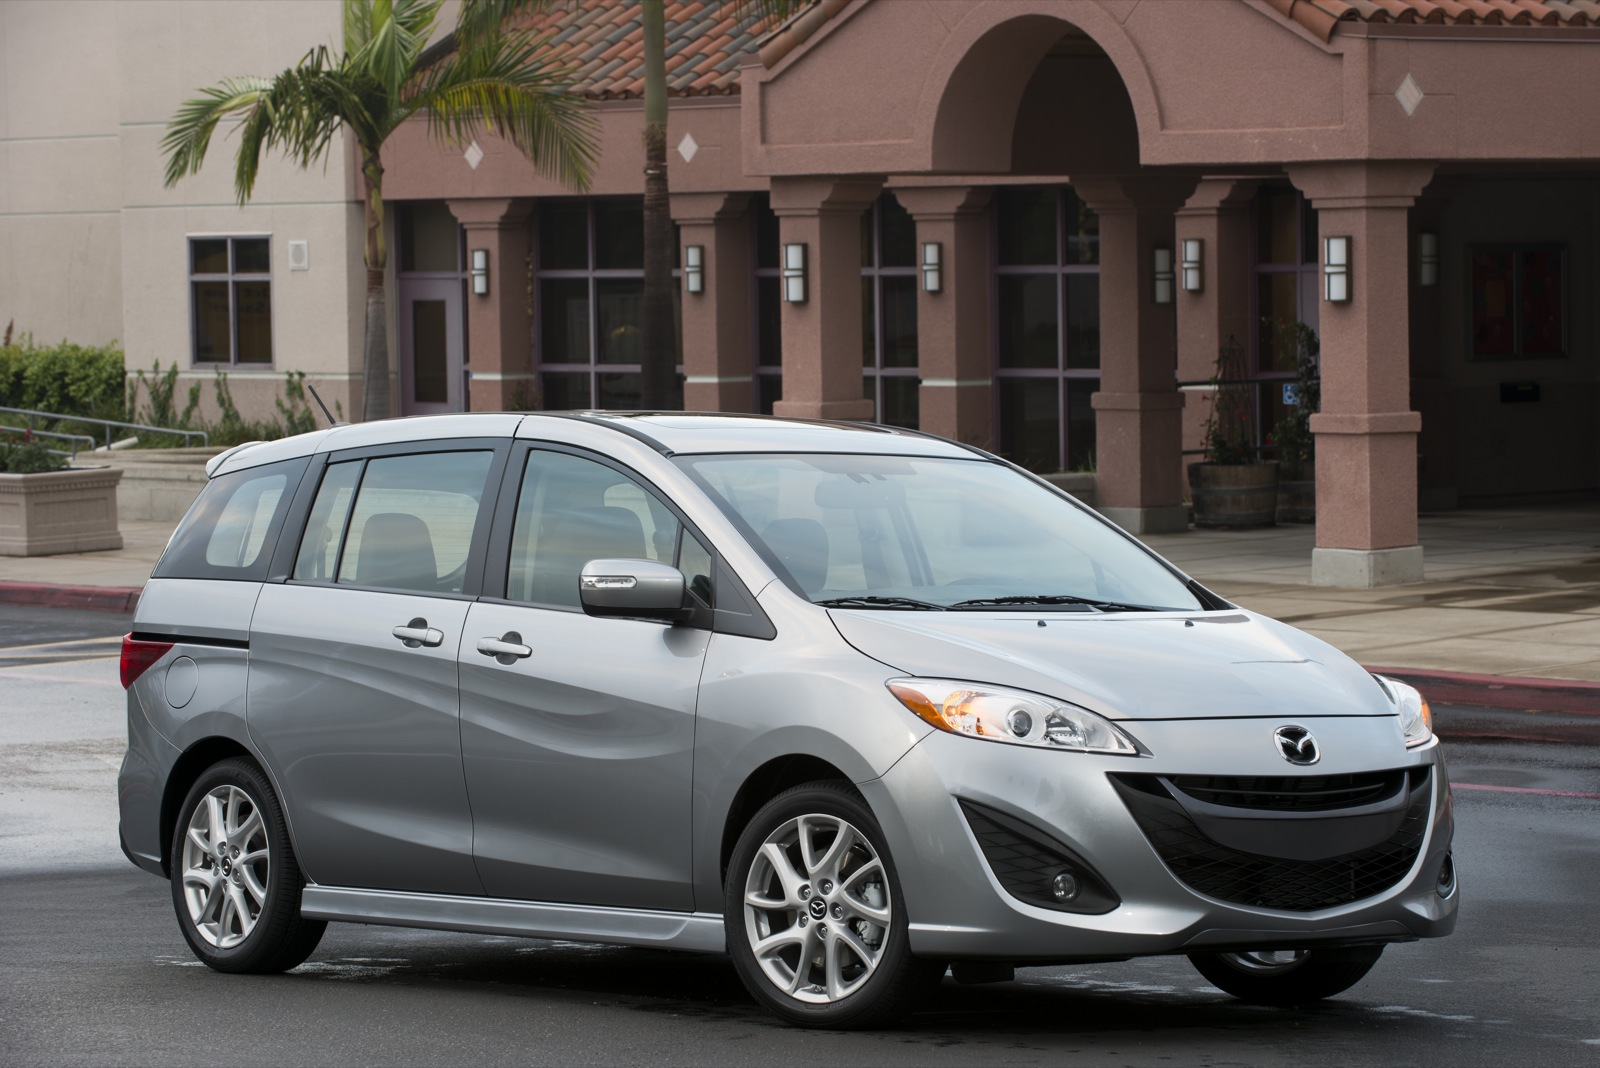 2013 Mazda MAZDA5 Review, Ratings, Specs, Prices, and Photos - The Car Connection